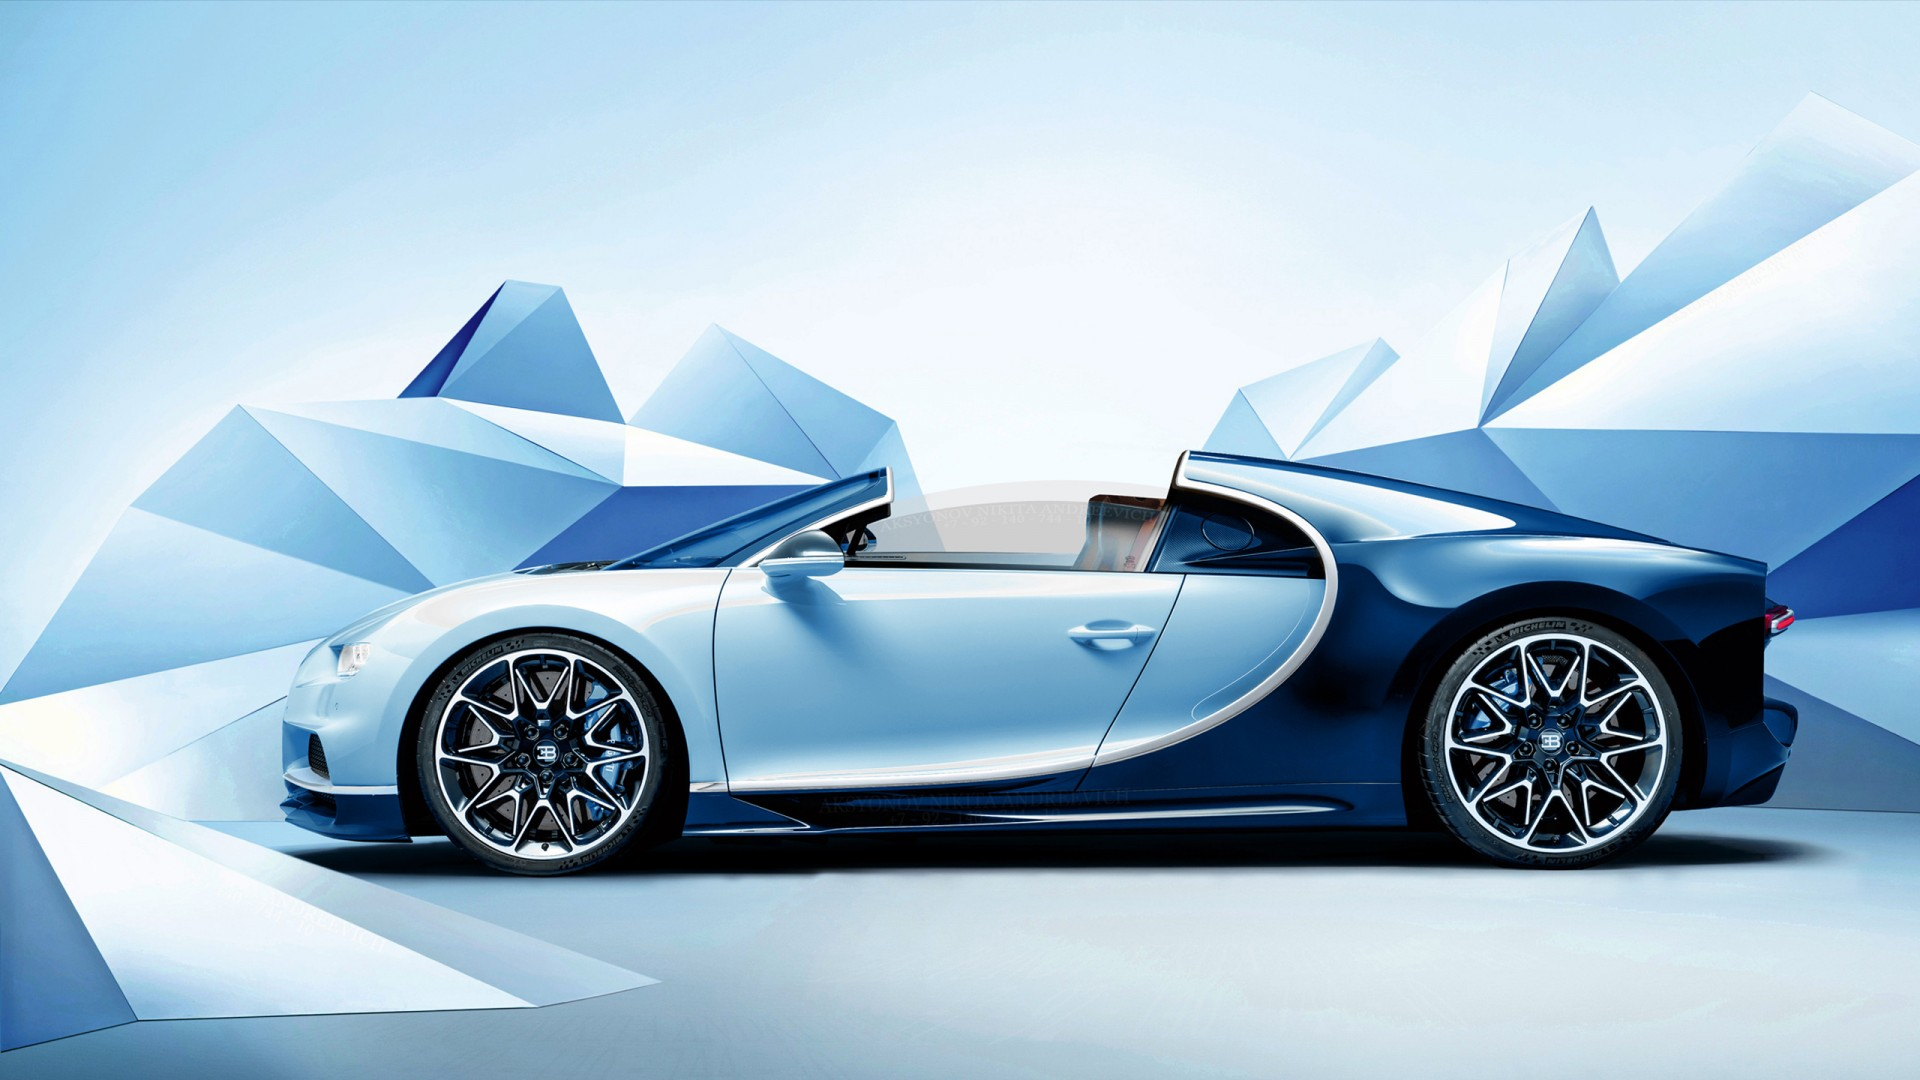 bugatti aerolithe with Bugatti Chiron Roadster Wallpapers on Bugatti 57 Arolithe together with Bugatti Chiron 2016 Bude Jeho Stylistickym Vzorem Vision Gran Turismo as well Amazing Bugatti Aerolithe Concept 2025 moreover Concept Car Design Drawings further 1936 E2 86 921938 Bugatti Type 57s Atalante.